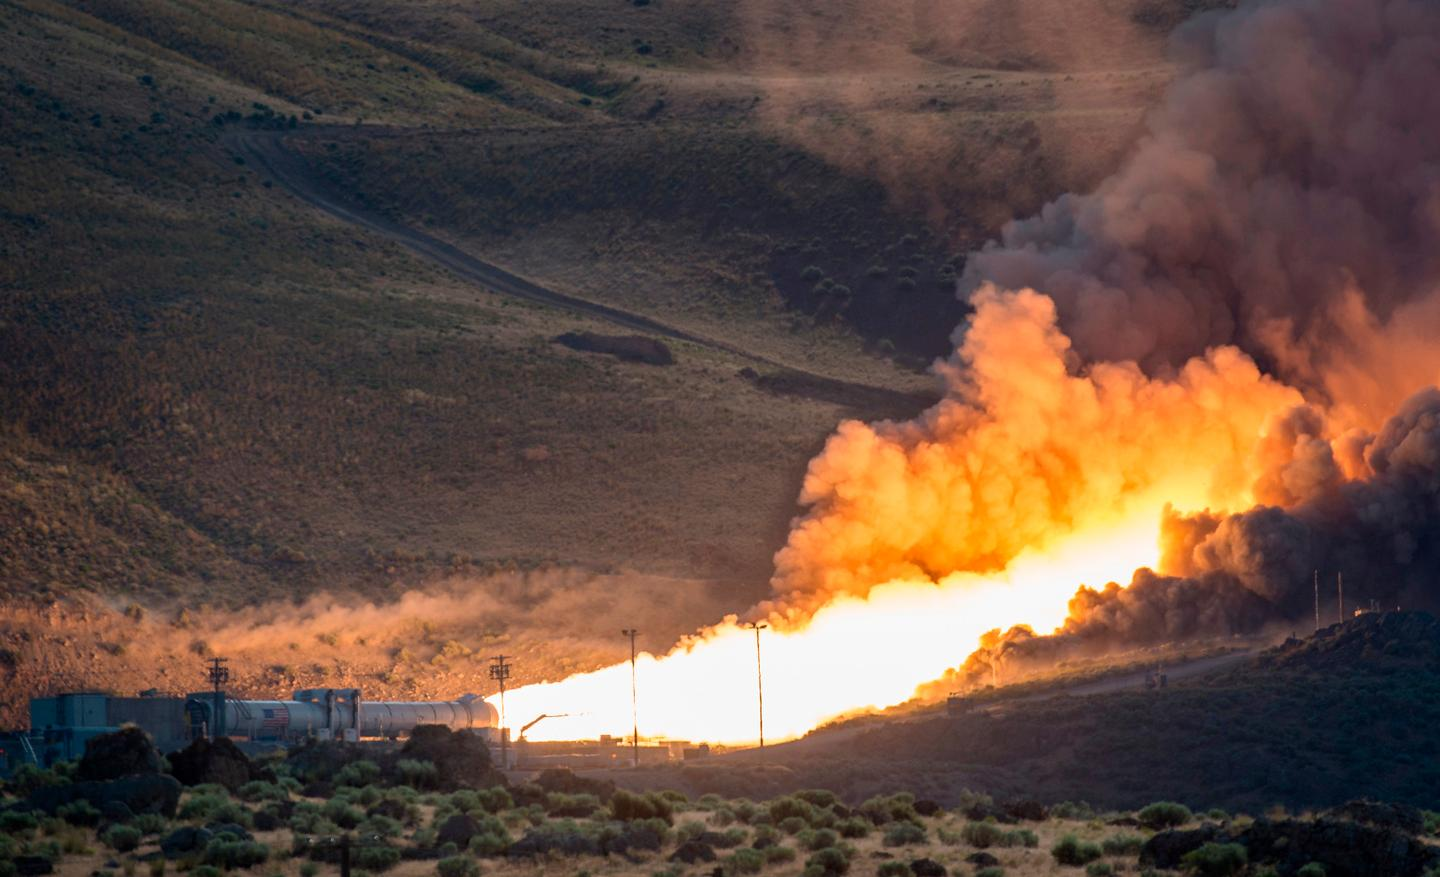 Conducted at 40° F (4.5° C) to test the effects of how propellant burns at the launch-pad temperature, the inside of the booster reached 6,000° F (3,315° C) and produced 3.6 million pounds of thrust